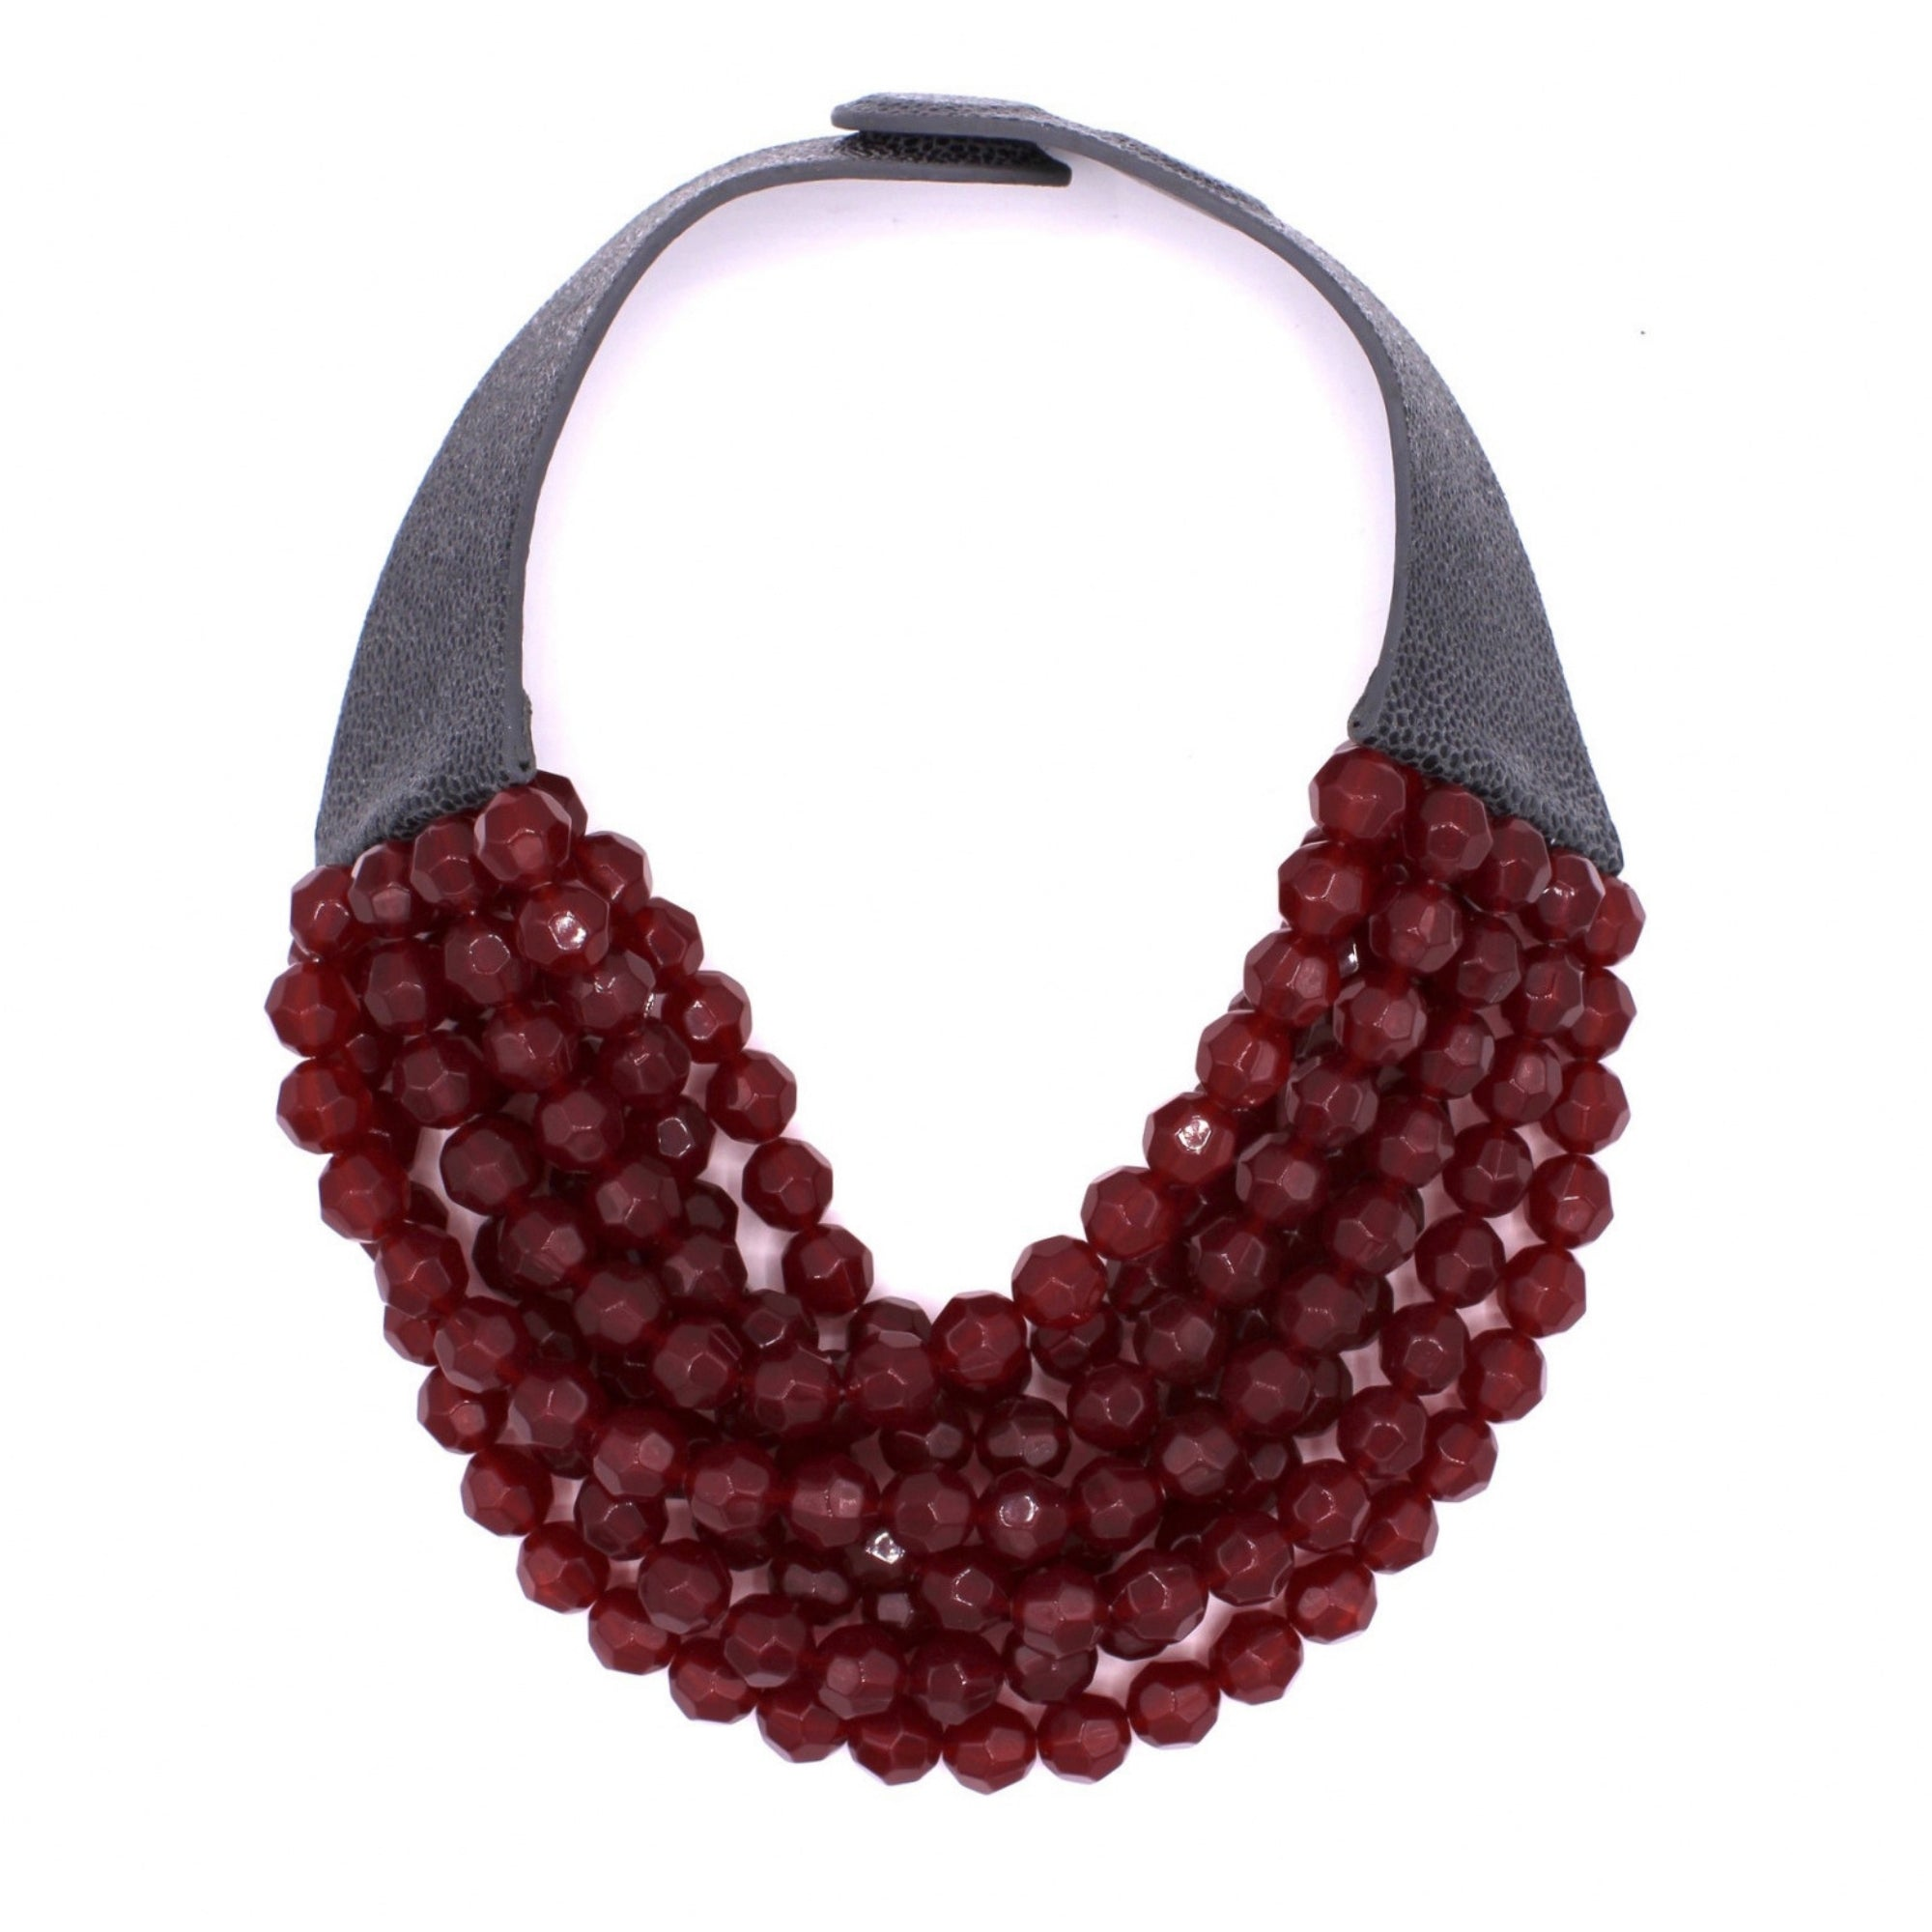 Ruby Opaline - Fairchild Baldwin - Handmade in Italy